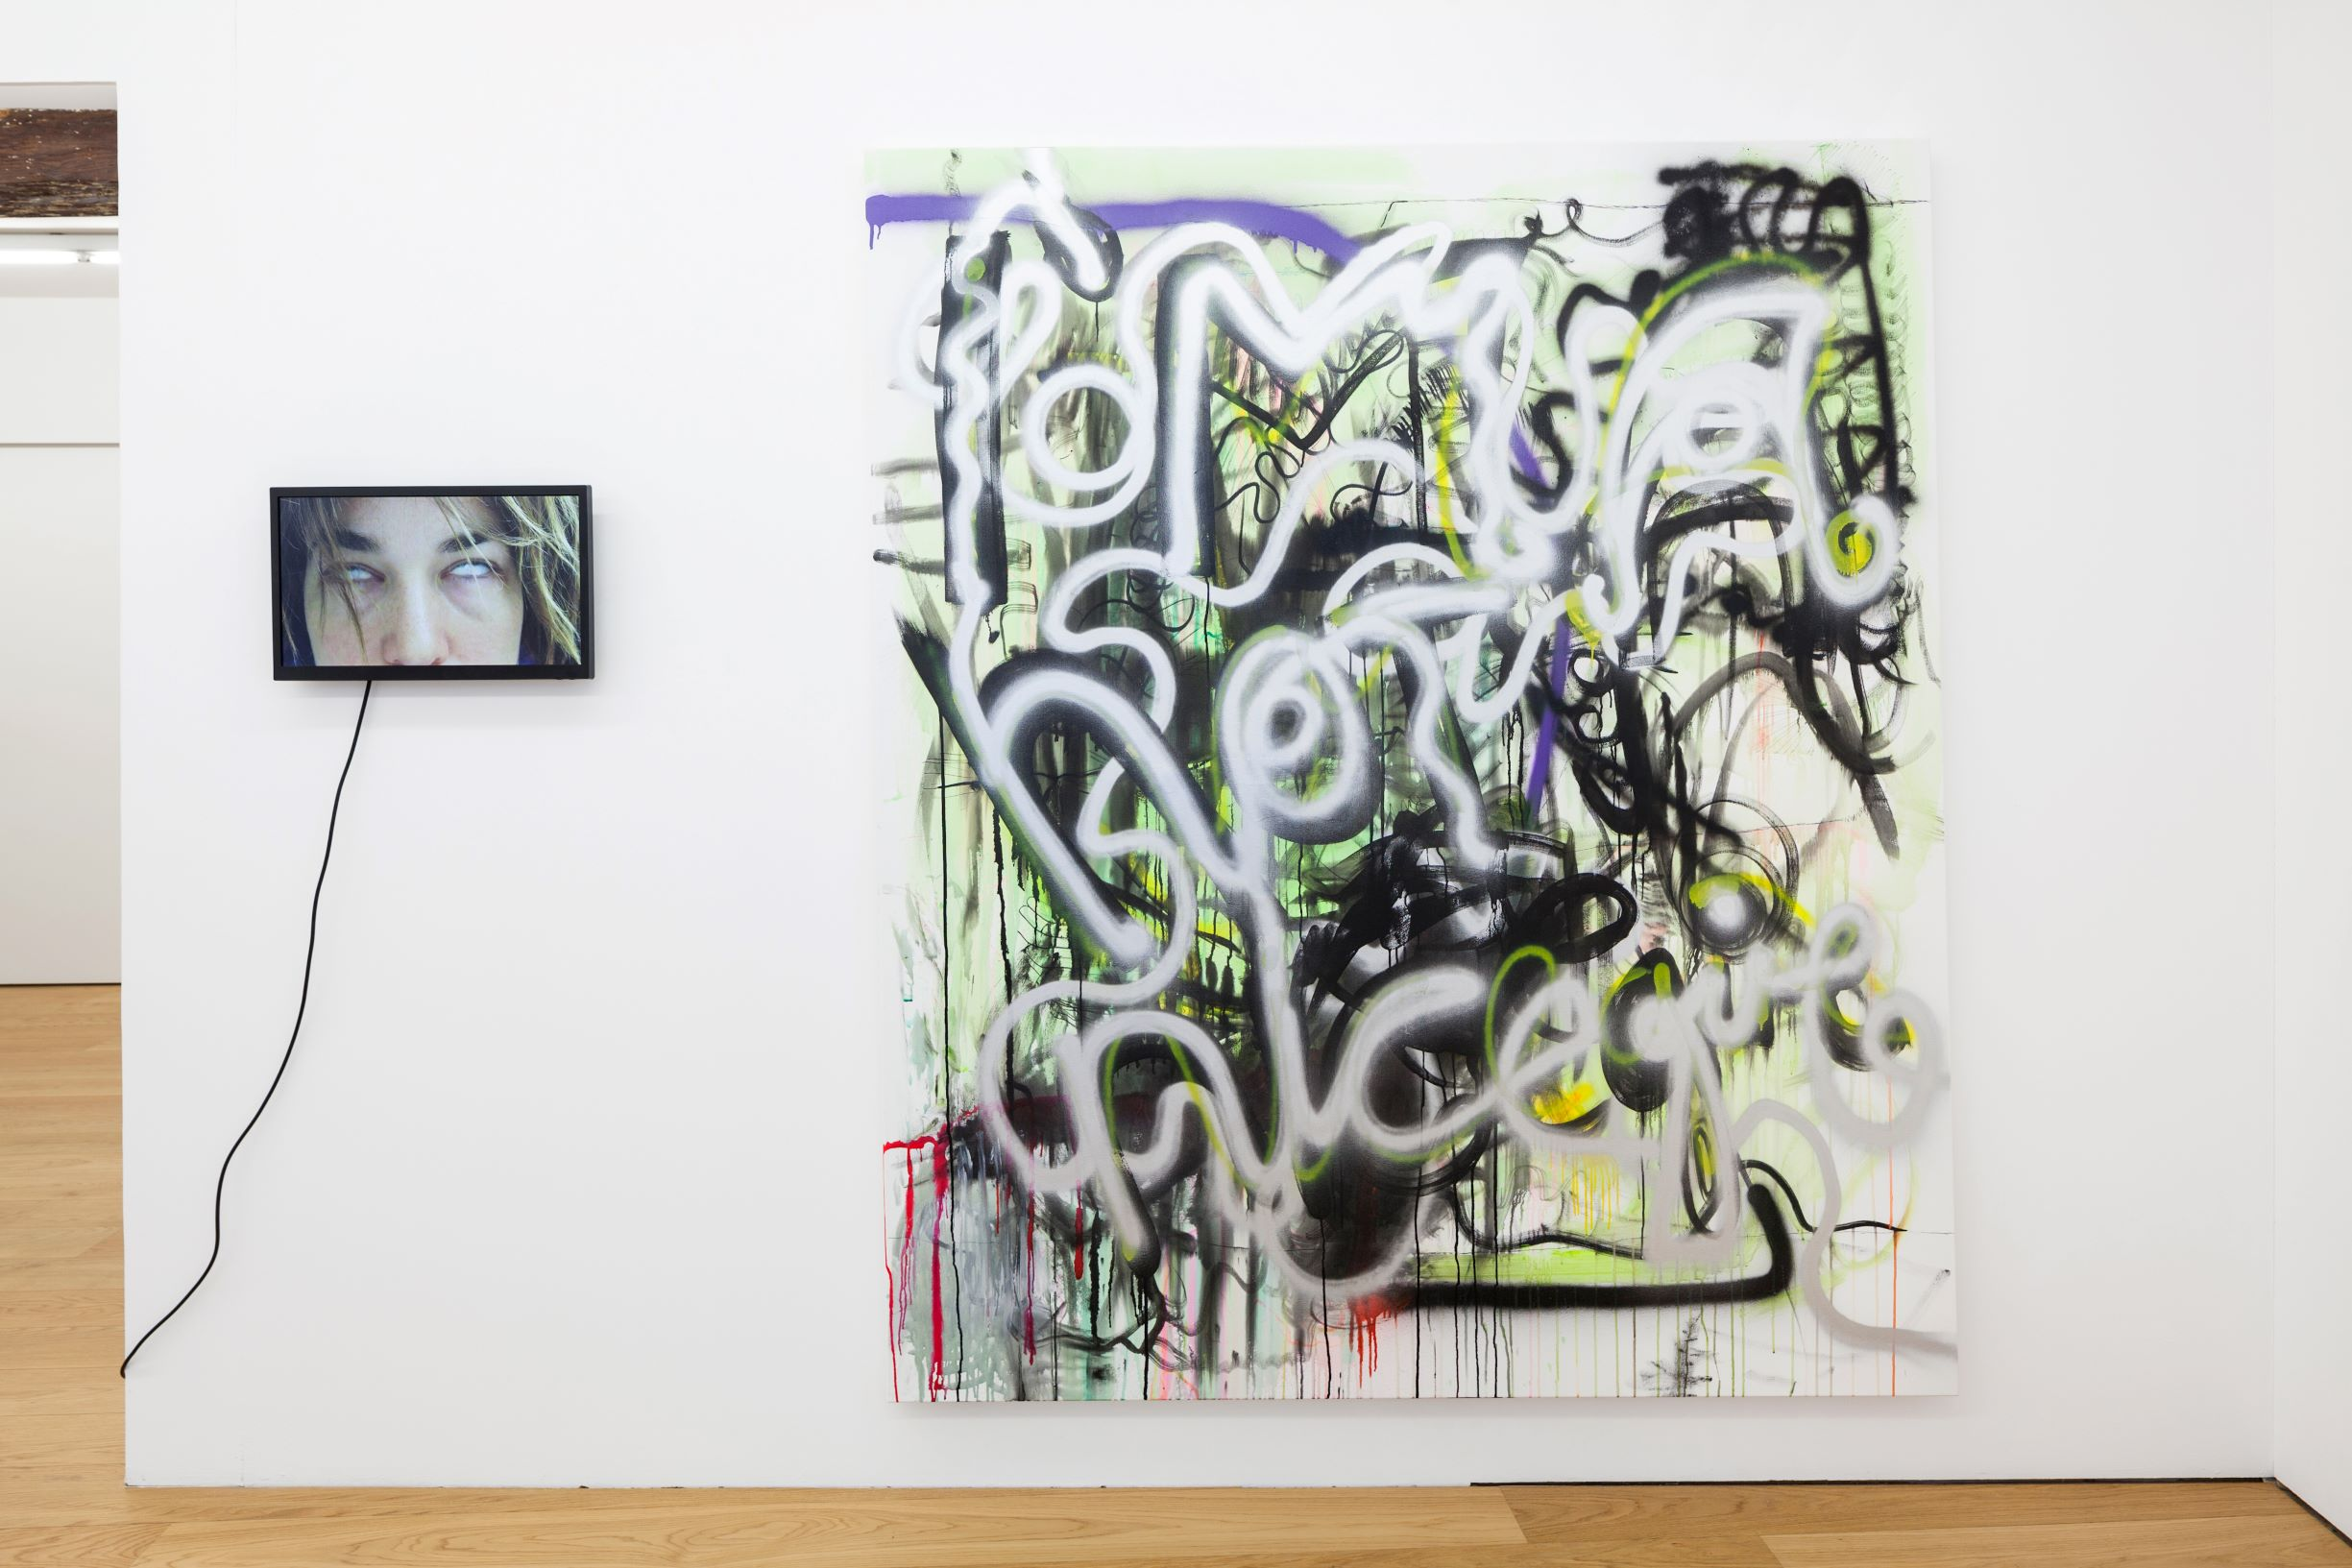 SCRIPTS, Linda Semadeni, Kirchgasse ©Björn Allemann KG.jpg Installation view, Not titled yet, 2020, Video loop (duration: 01:02 min) / Follow your nose, 2020, Gouache, ink, acrylic on canvas, 200 x 170 cm.